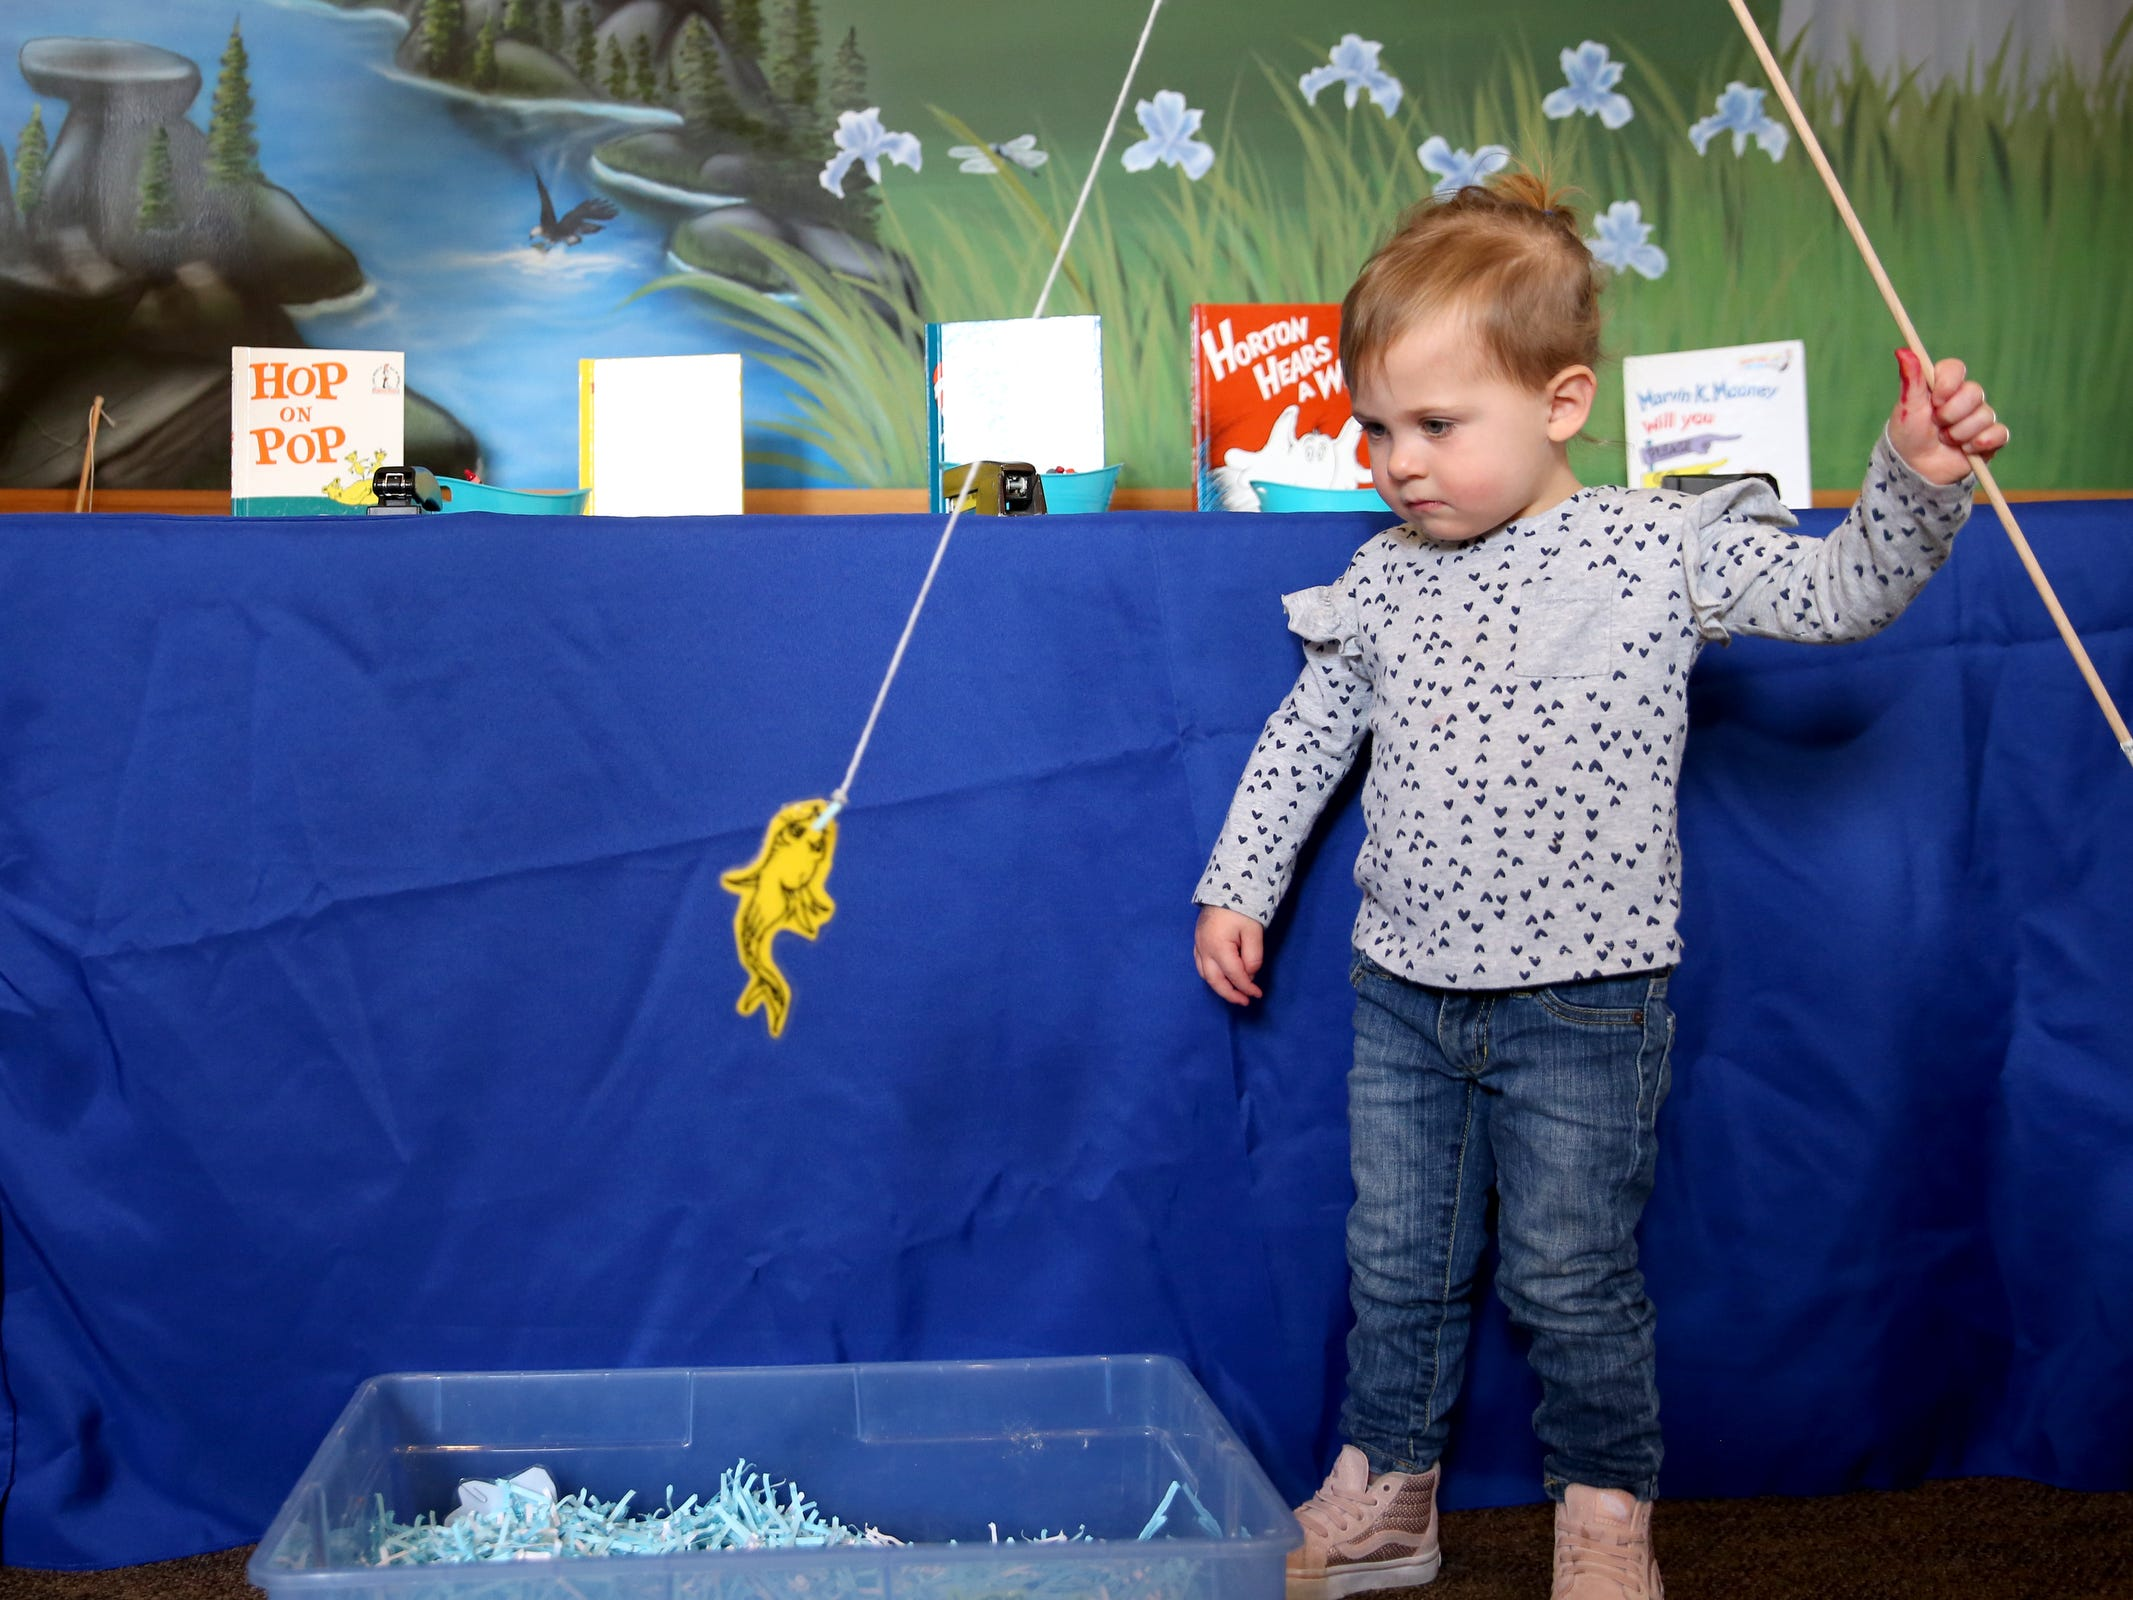 """Jaelynn Slaezak, 2, of Salem, plays a fishing game, an homage to """"One Fish, Two Fish, Red Fish, Blue Fish"""", as part of a National Read Across America Day activity in honor of Dr. Seuss' birthday at Gilbert House Children's Museum in Salem  on Friday, March 1, 2019."""